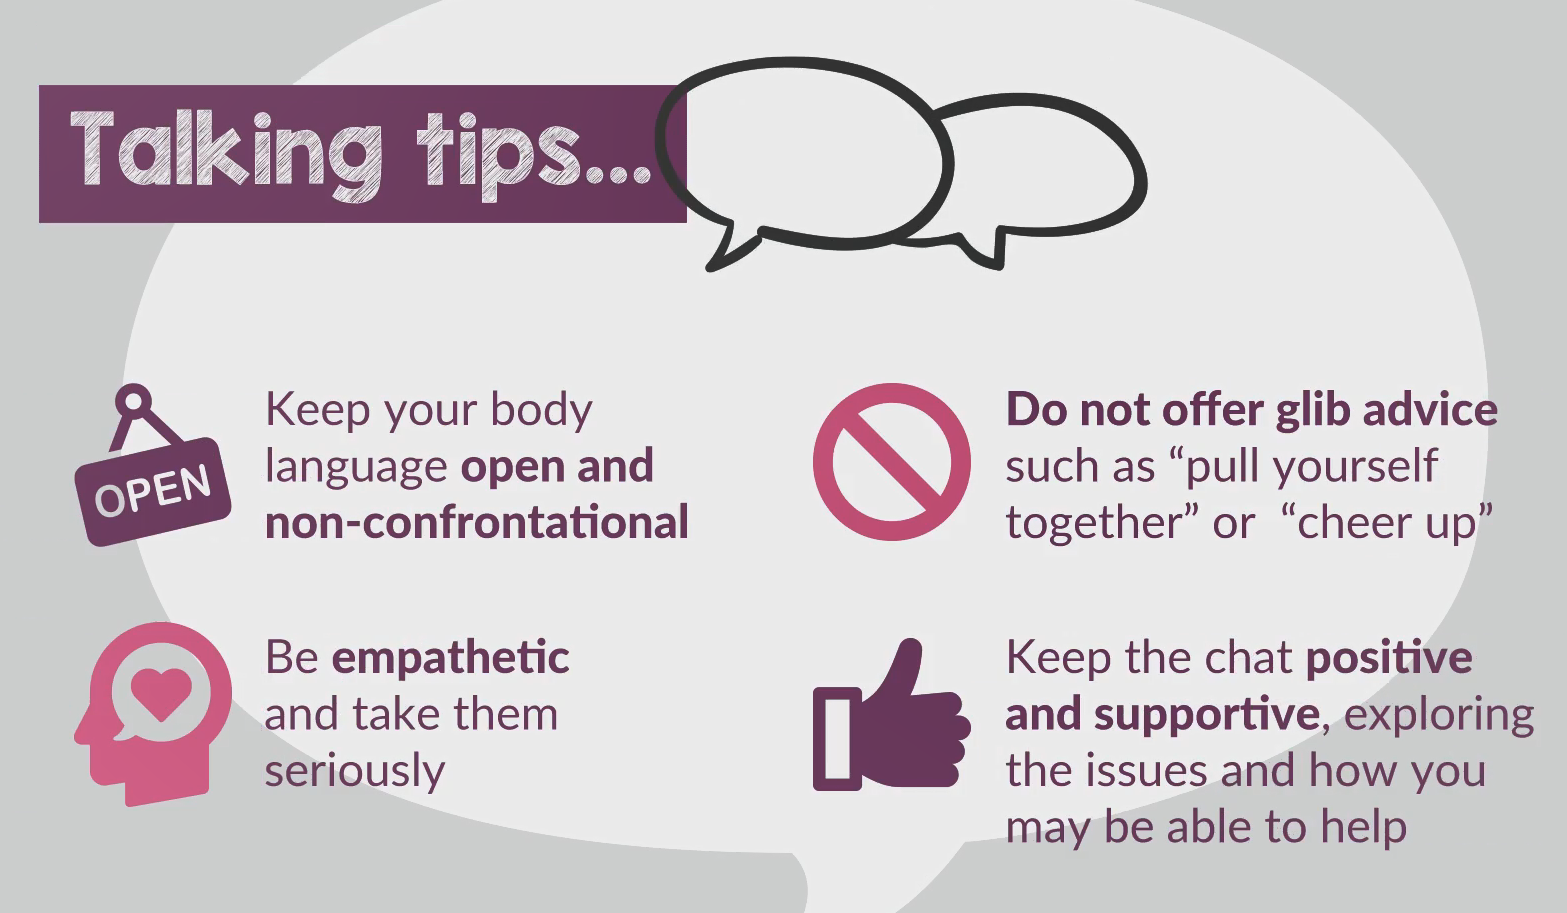 #HU4HM - GIF - Tips for talking with young people